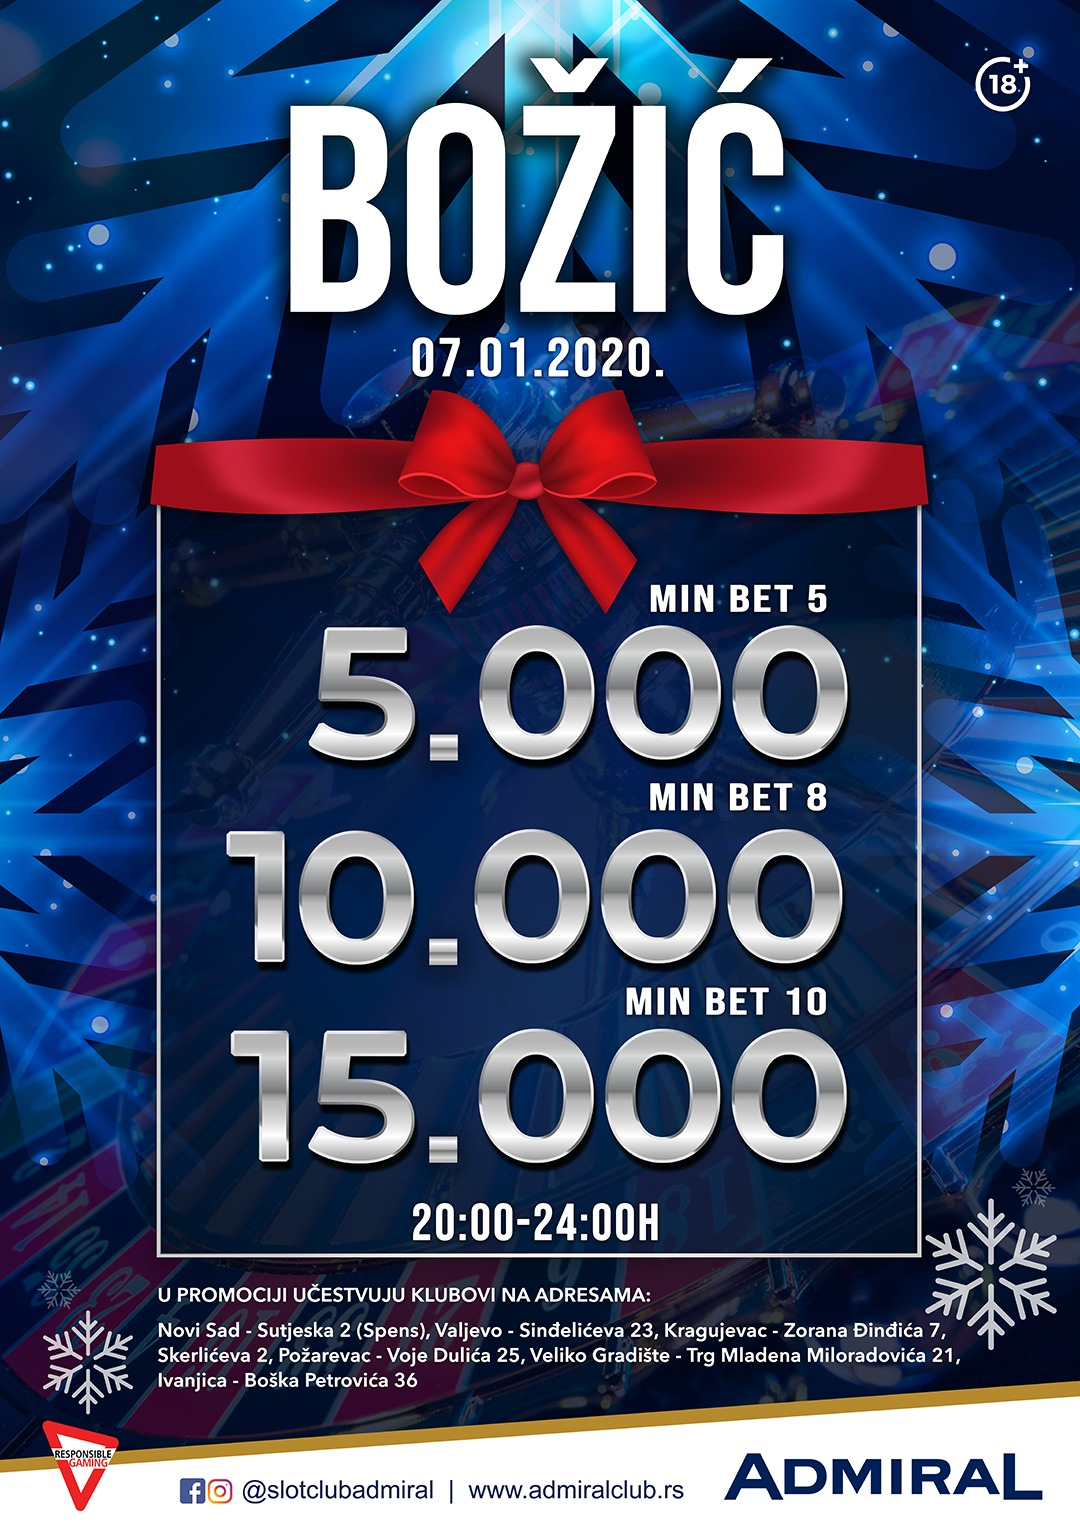 Bozic mini